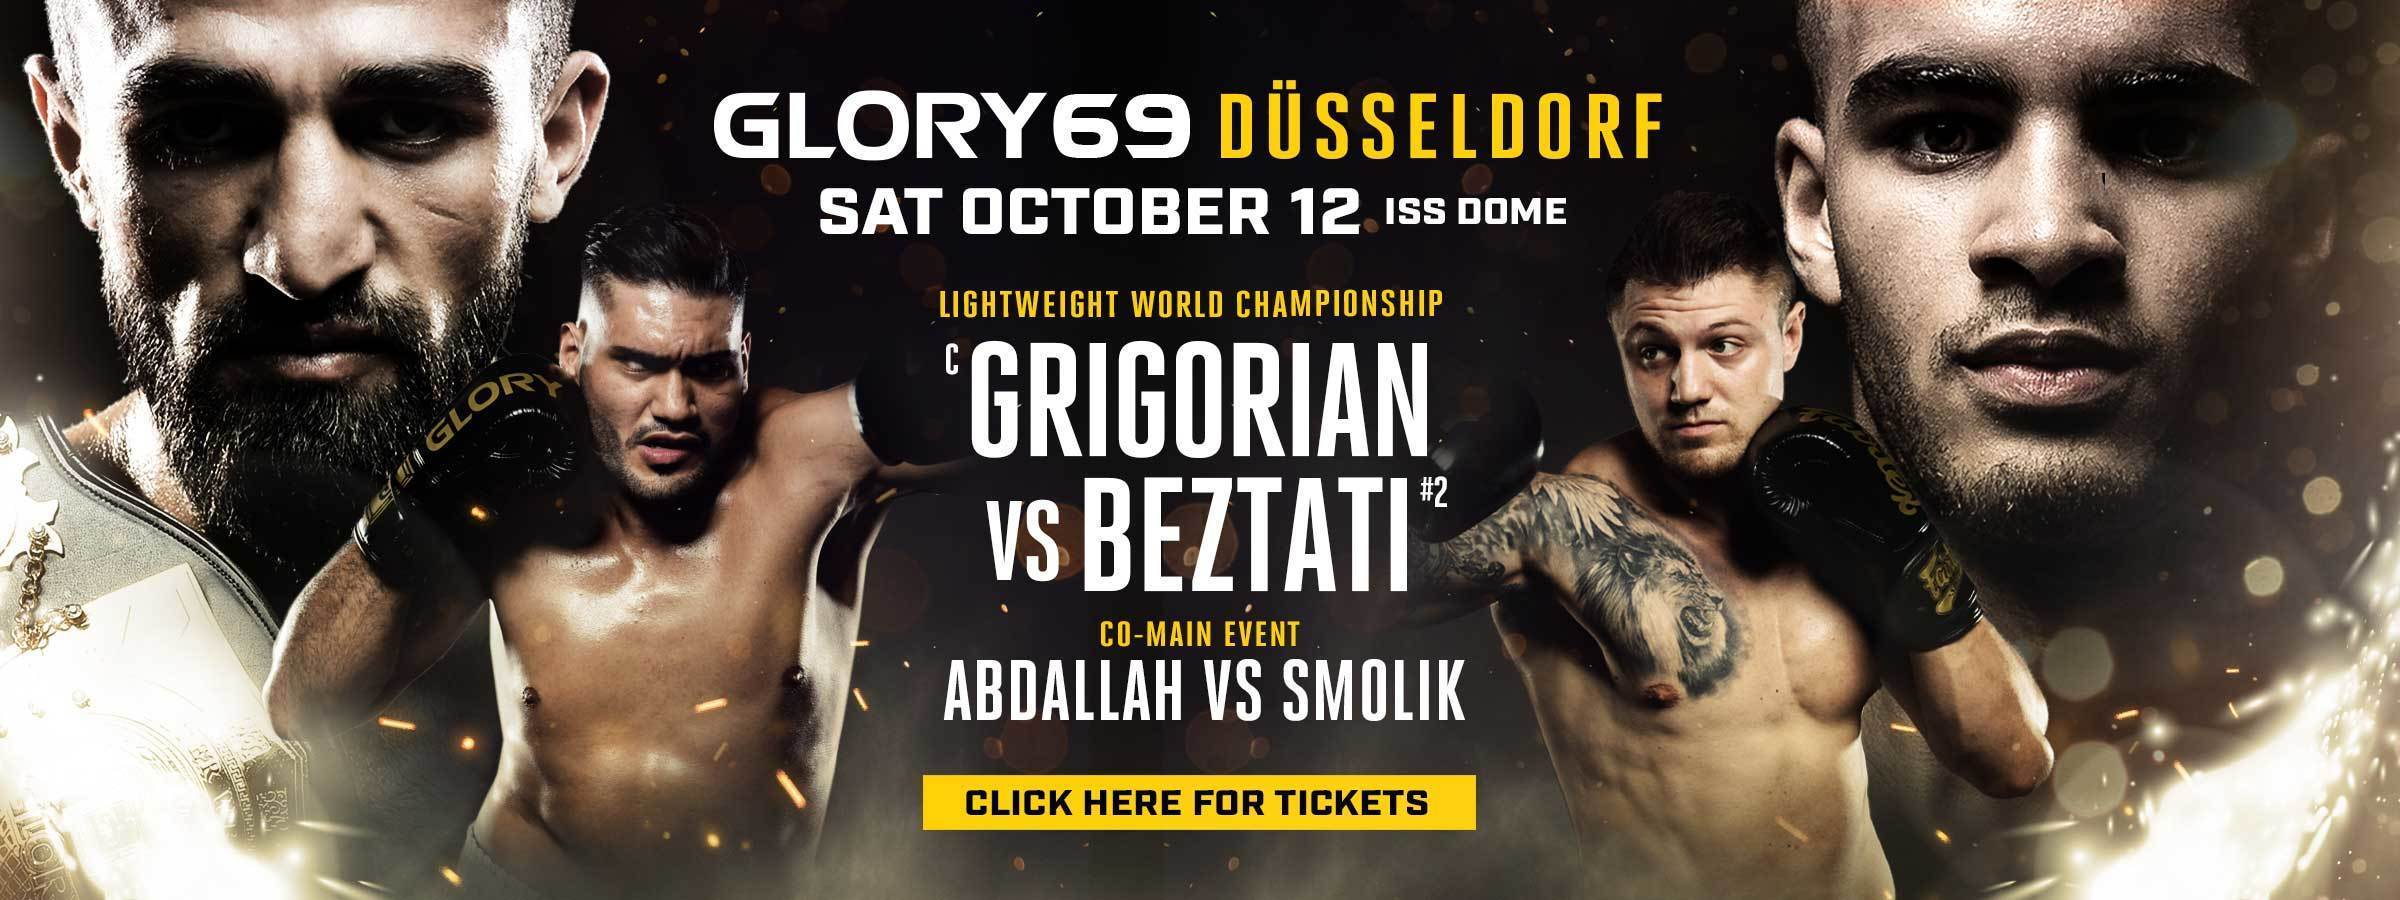 GLORY 69 Dusseldorf On Sale